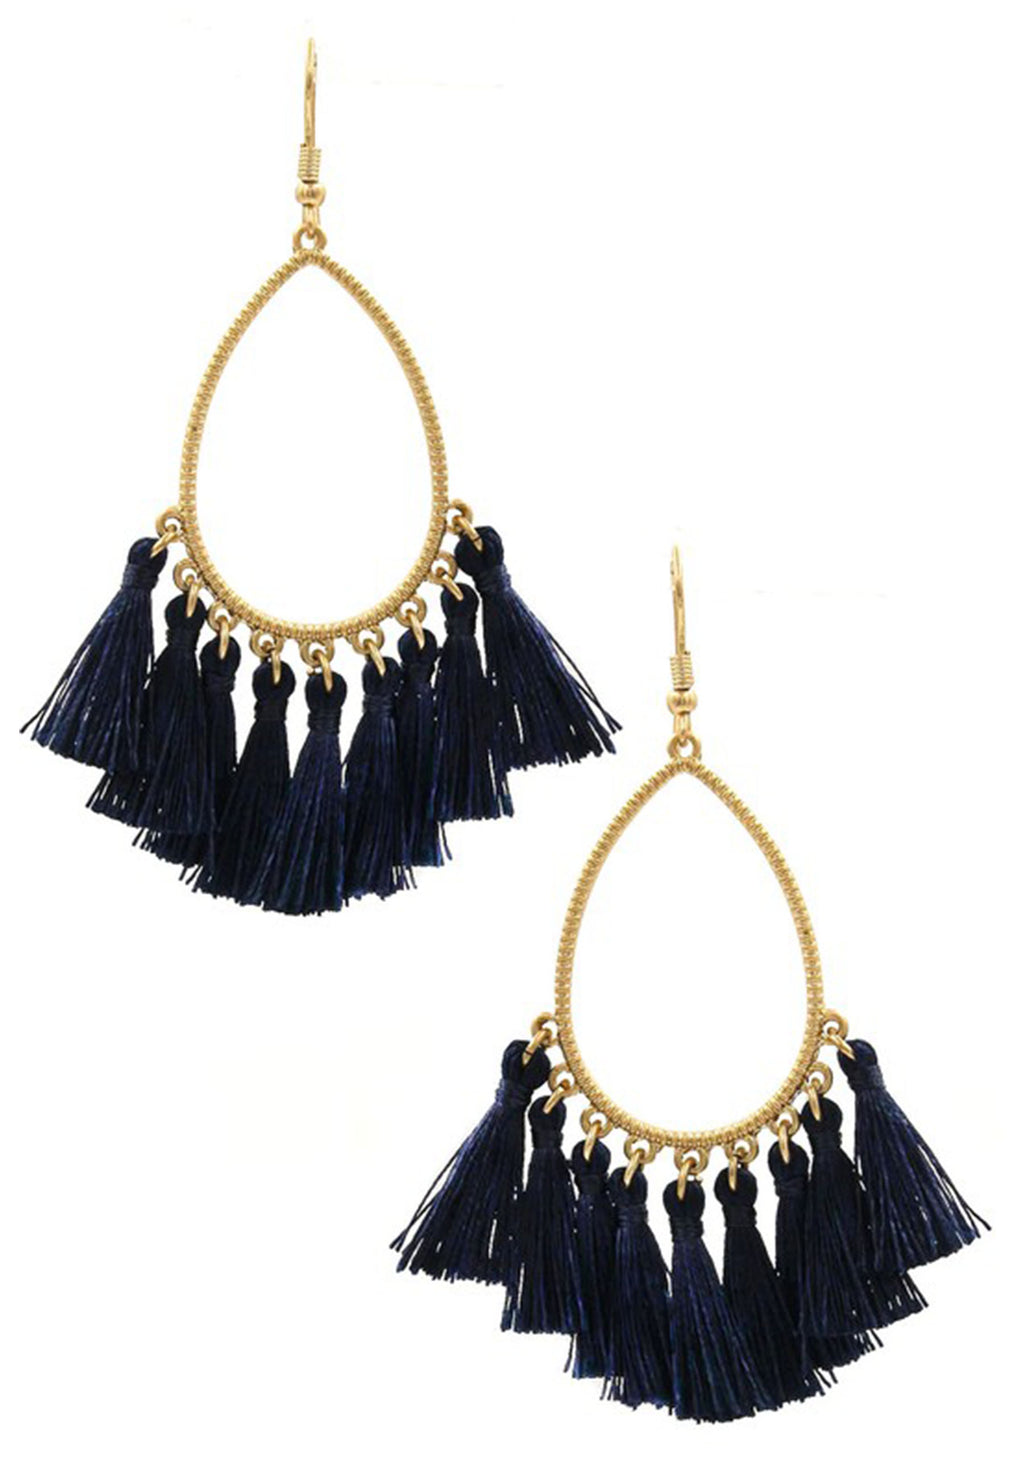 Black tear drop earrings with tassels